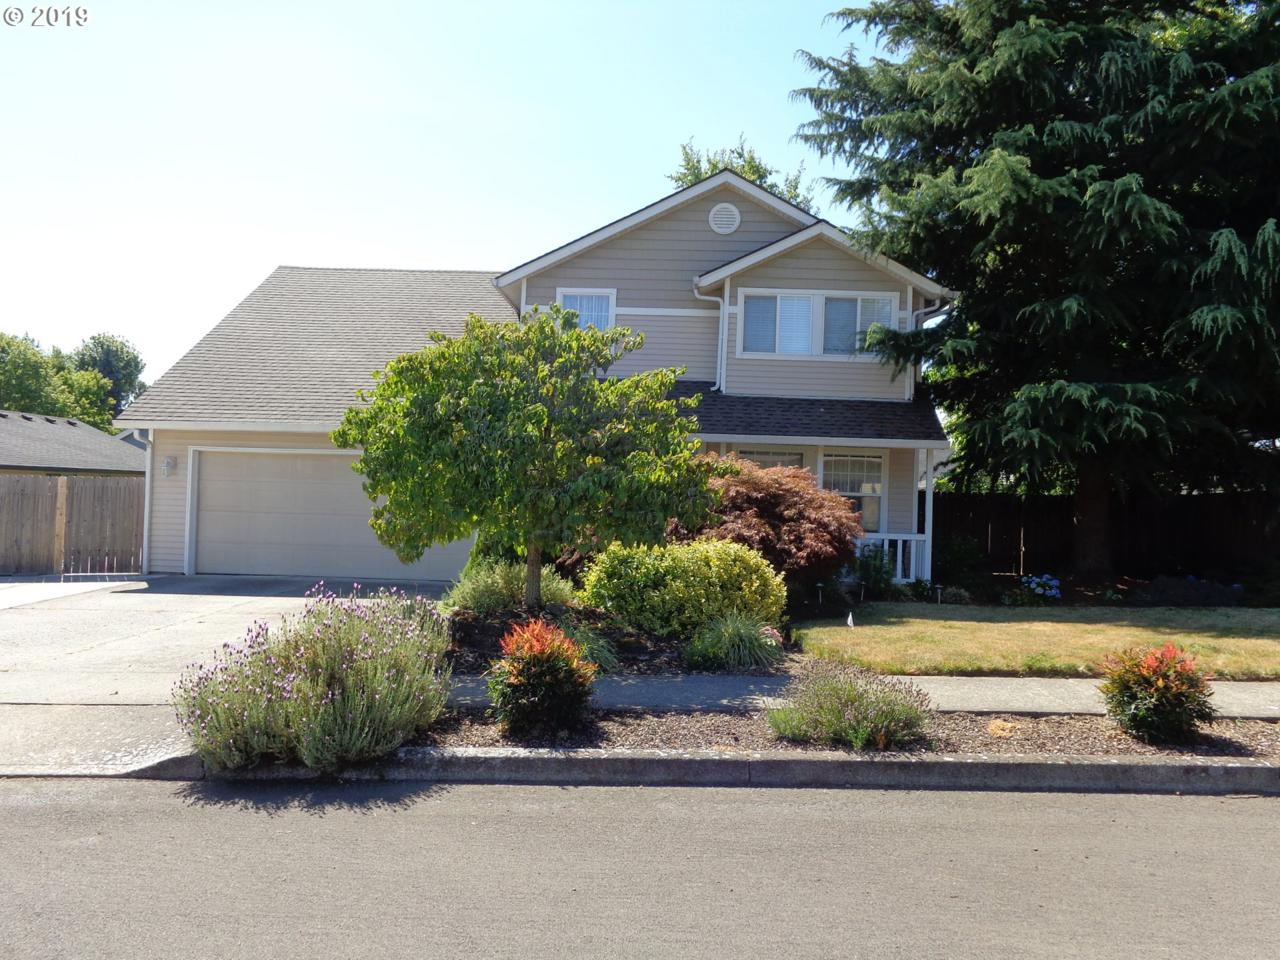 12714 39TH Ave - Photo 1